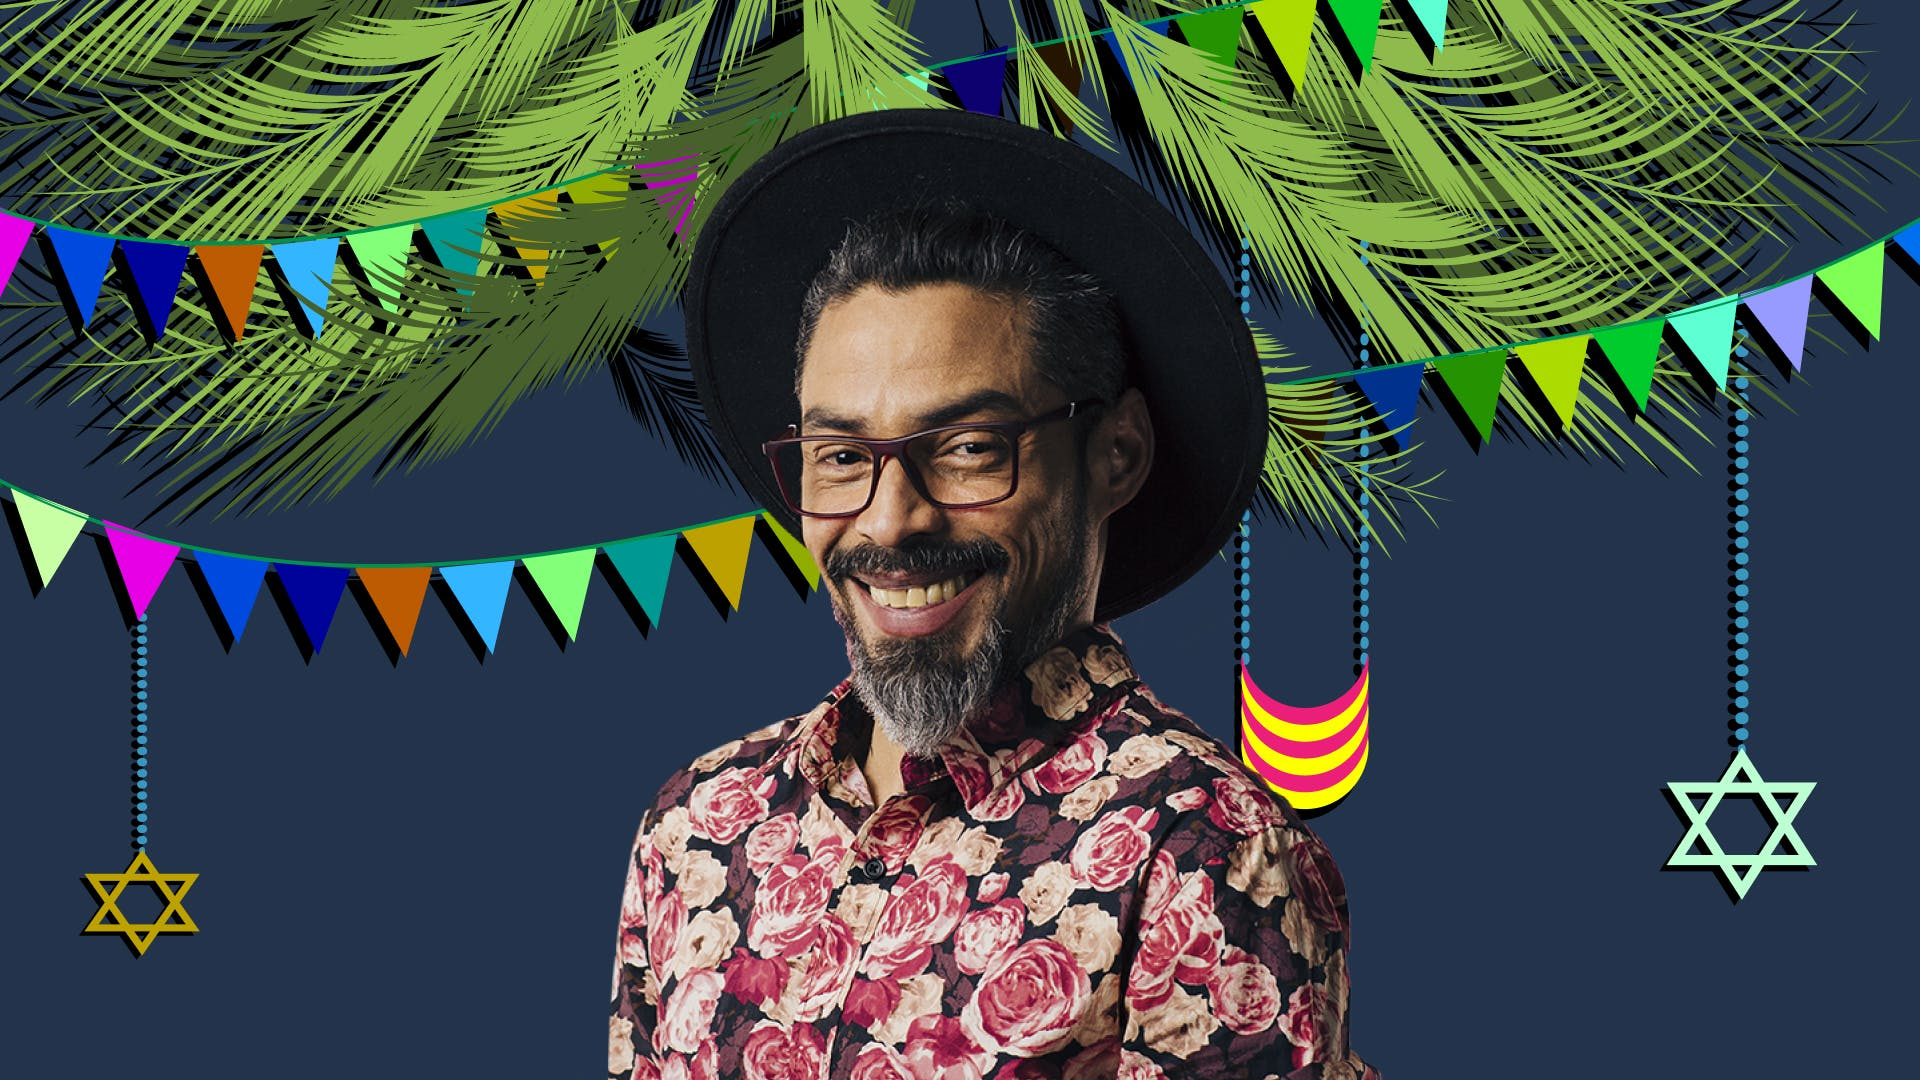 Smiling man with glasses against Sukkot background with flags, stars of David, and plant materials